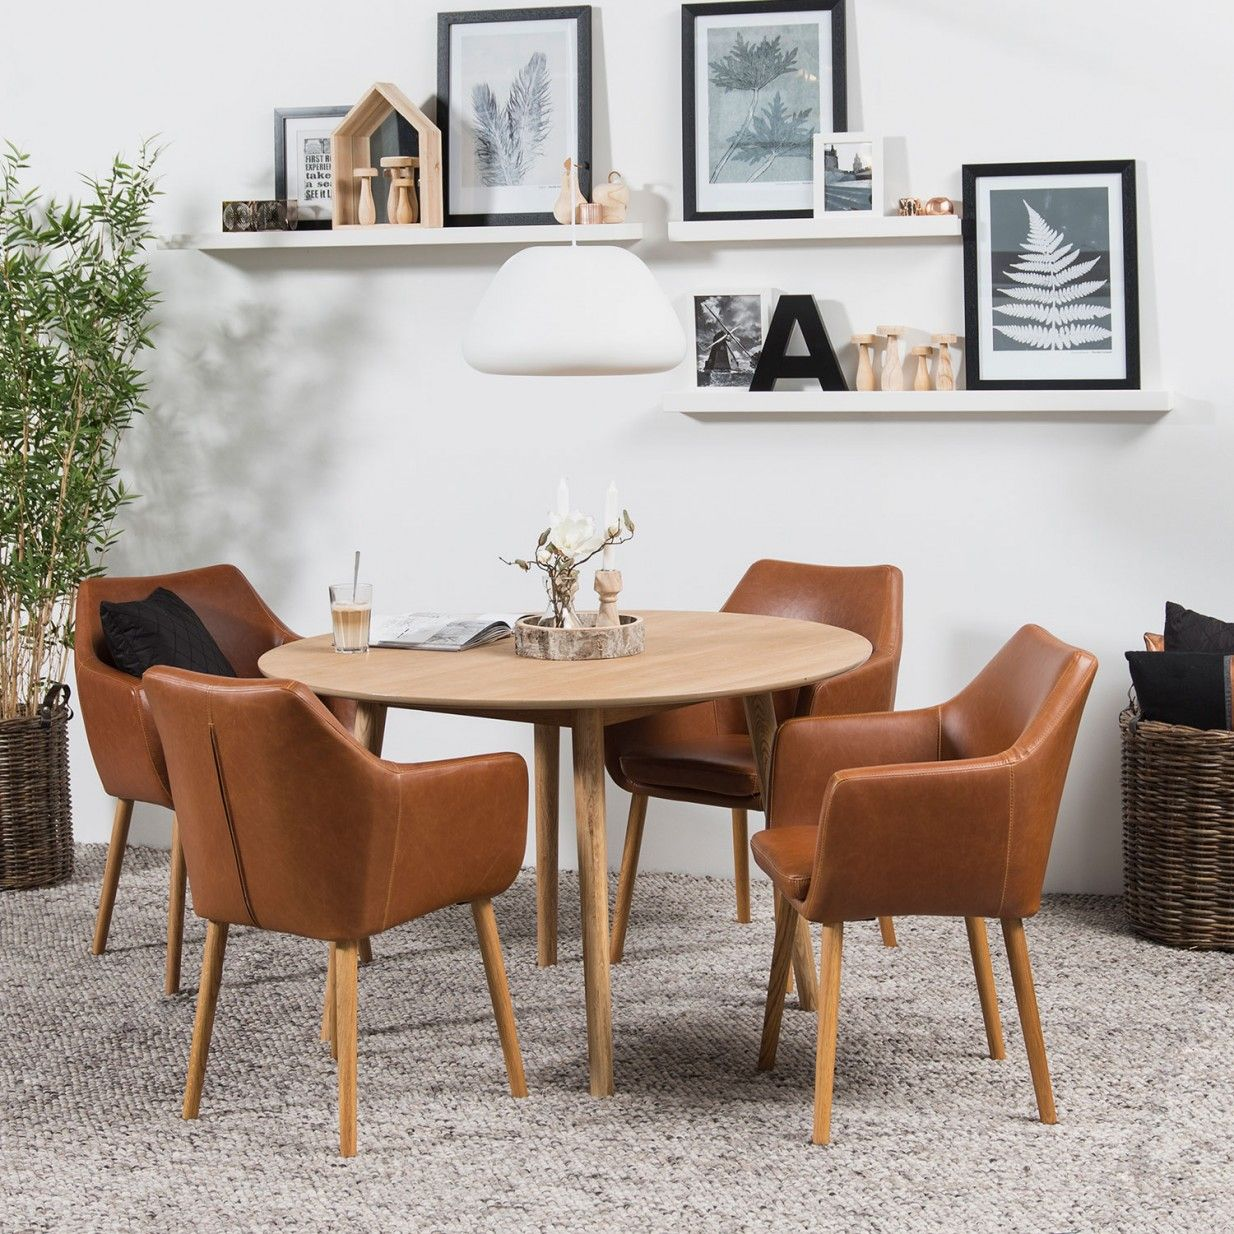 Nora Armchair Idag Monoqi Modern Dining Room Tables Dining